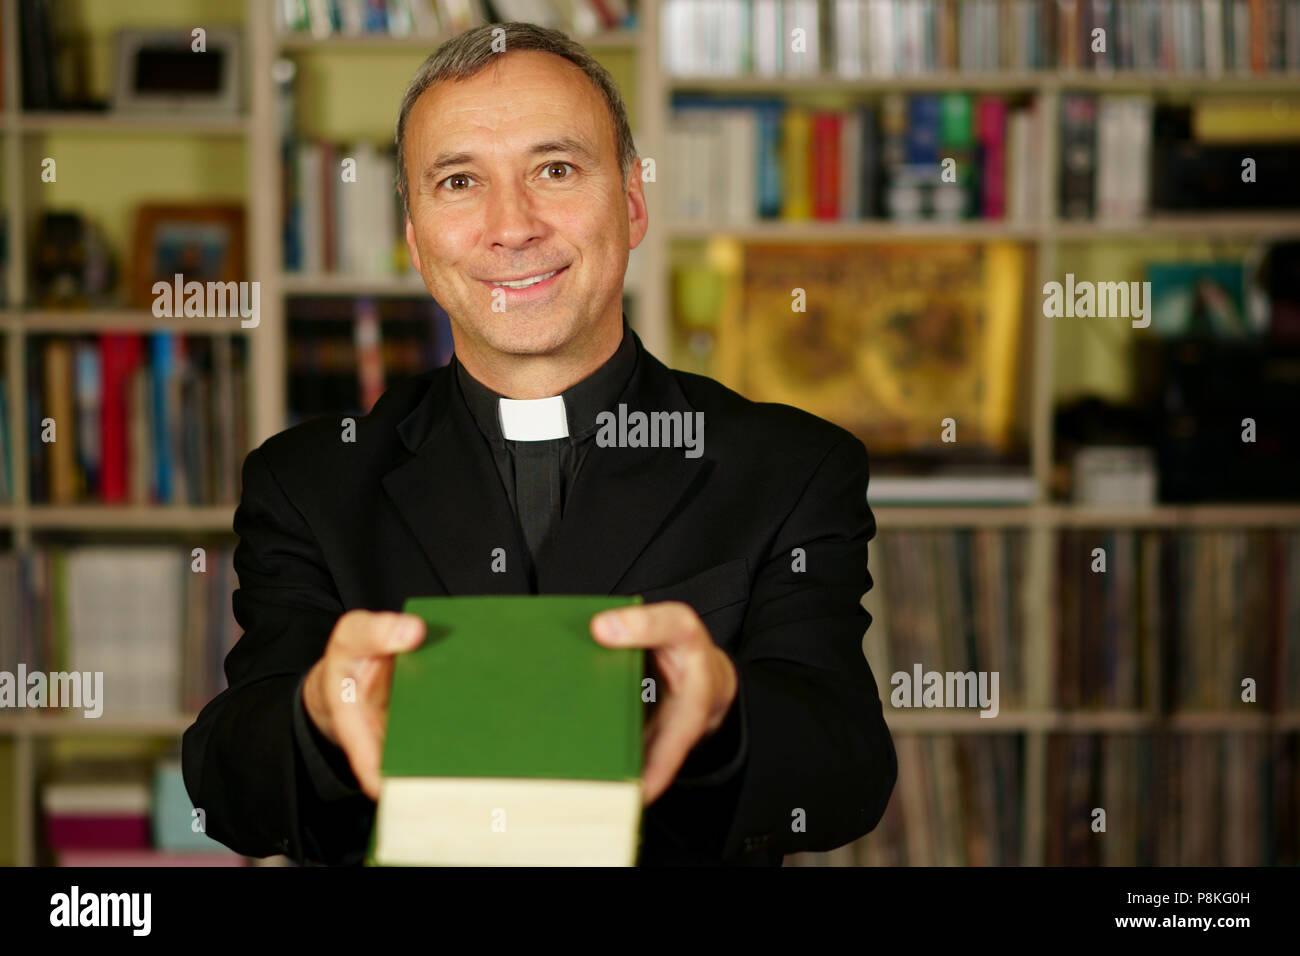 A good looking catholic priest is studying into his library. He looks at us with serenity, optimism and is offering the Bible. - Stock Image